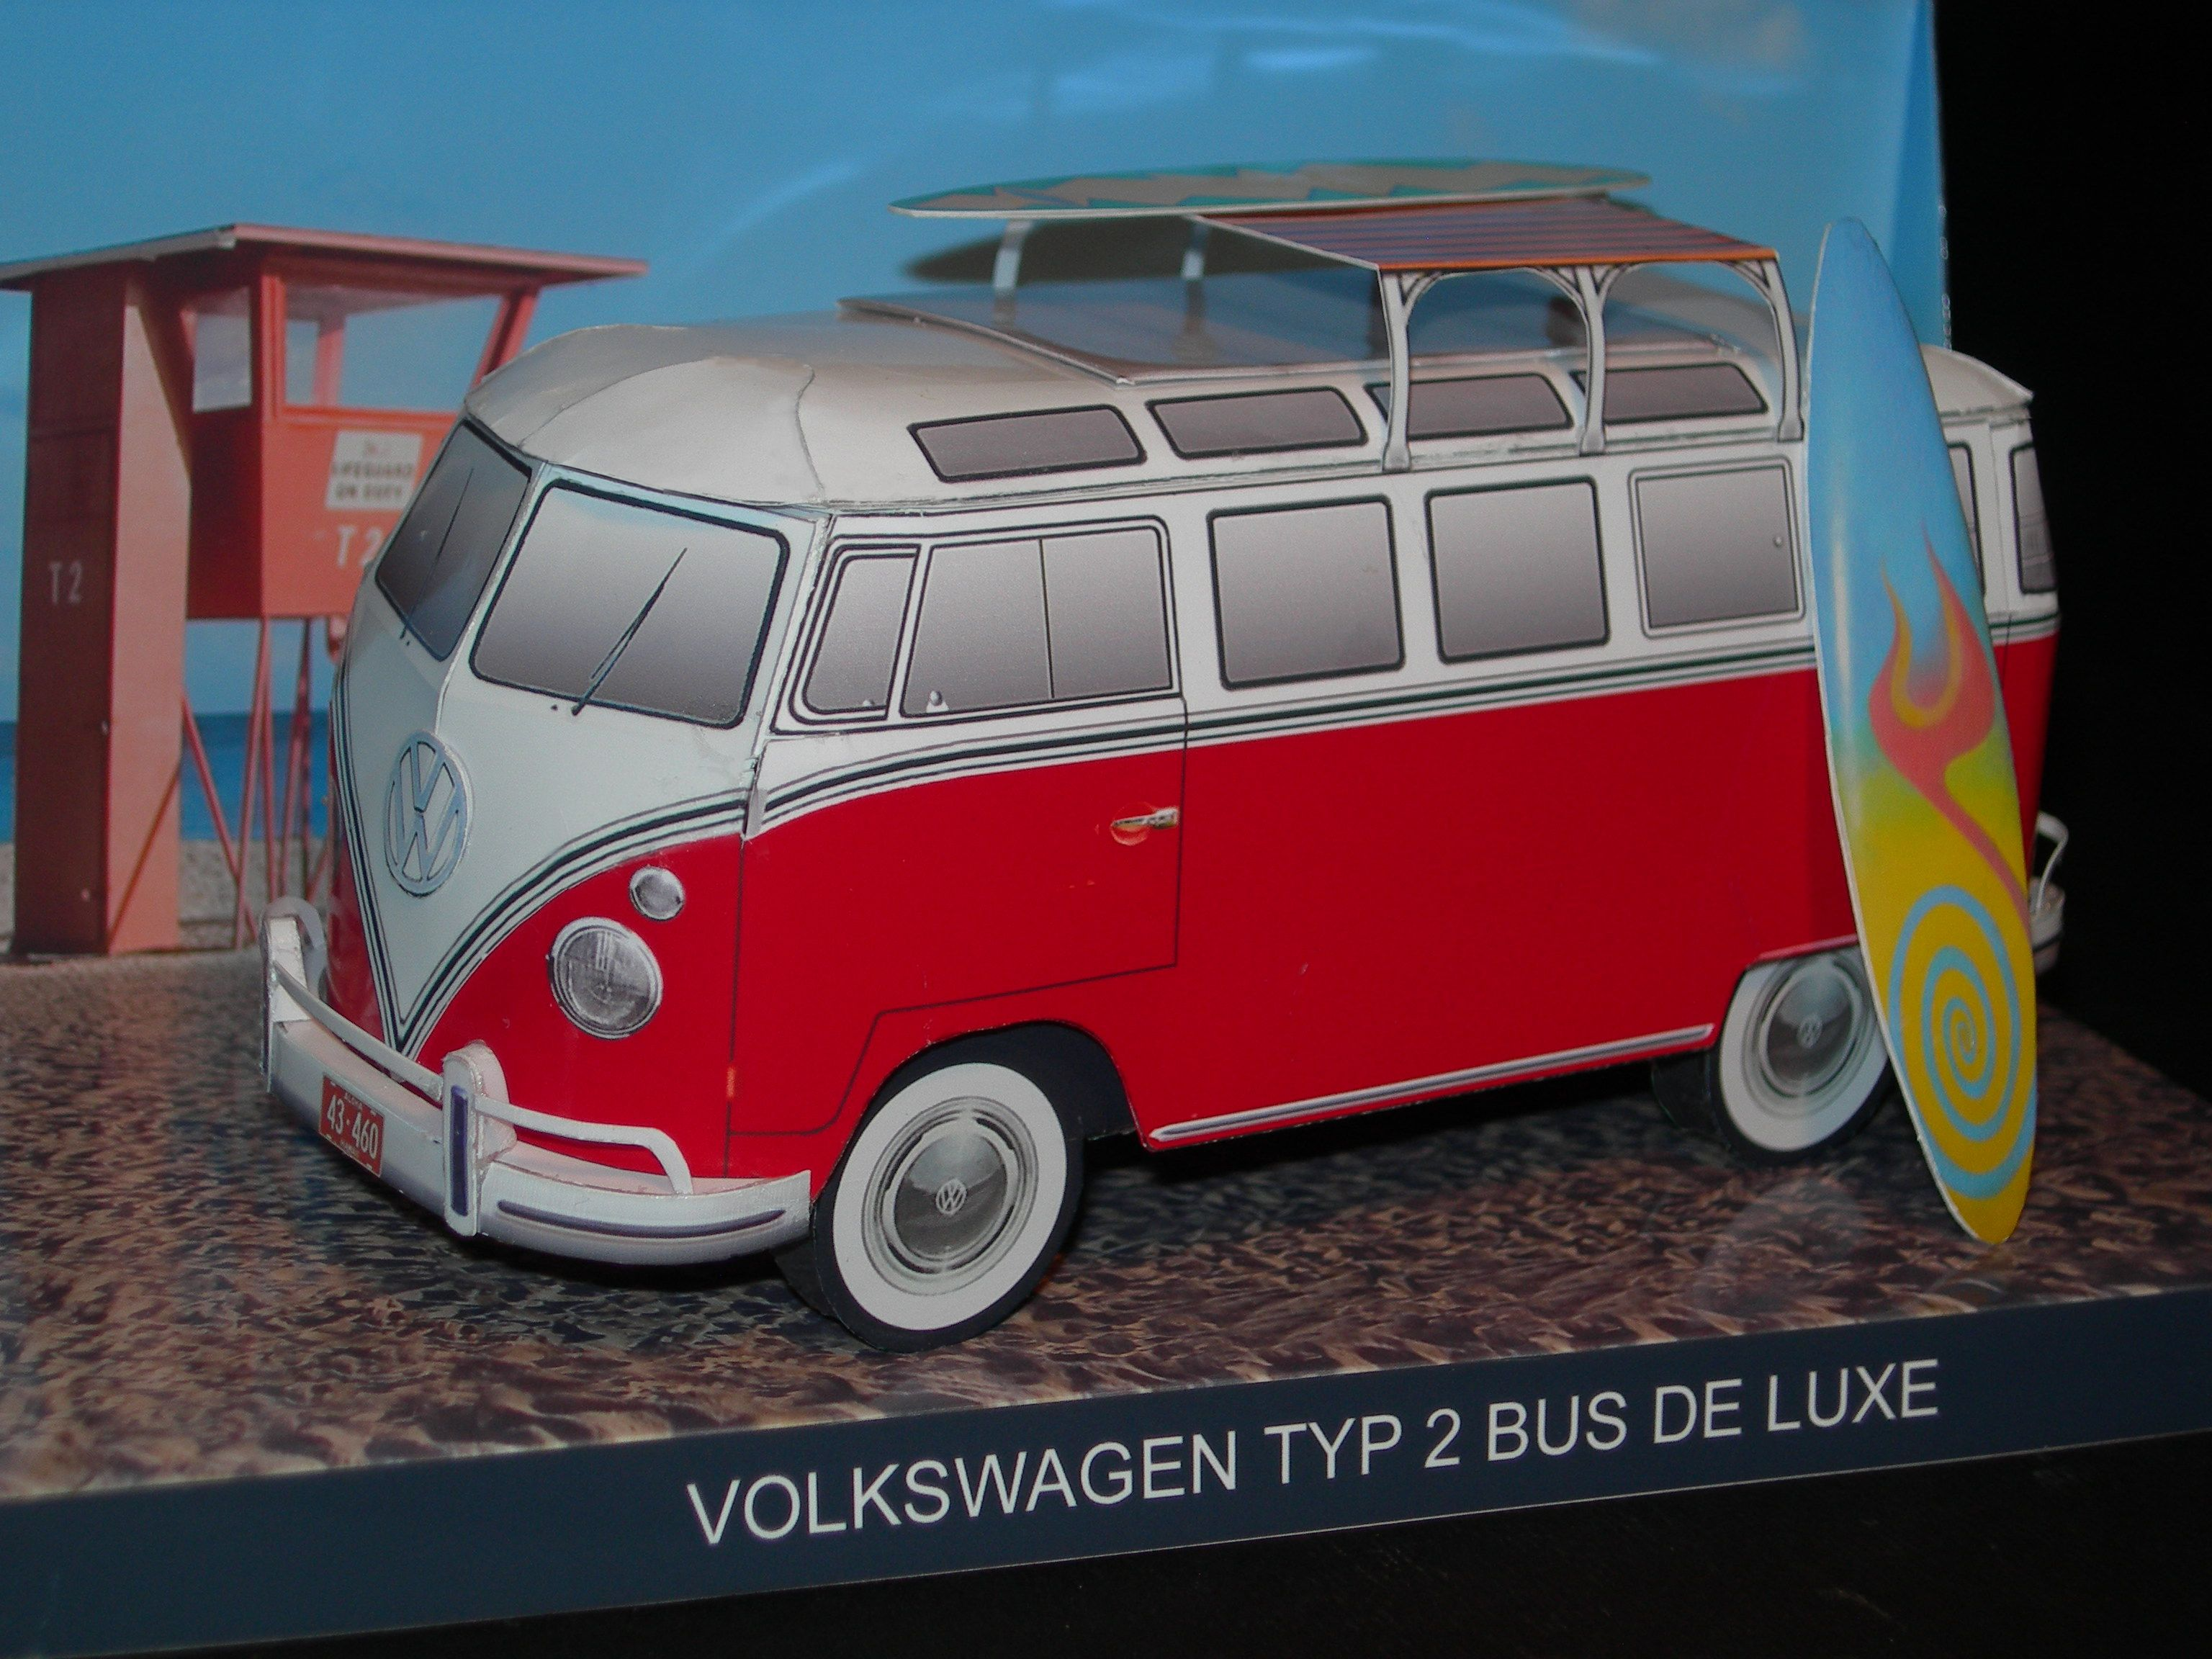 Unusual Ibanez Gio Wiring Tiny 3 Pickup Les Paul Wiring Diagram Square Di Marizo 3 Coil Pickup Young Les Paul 3 Way Switch OrangeHow To Wire Guitar VW BUS DE LUXE (Samba Bus) 1 | Old Car And Motorcycle Paper Models ..